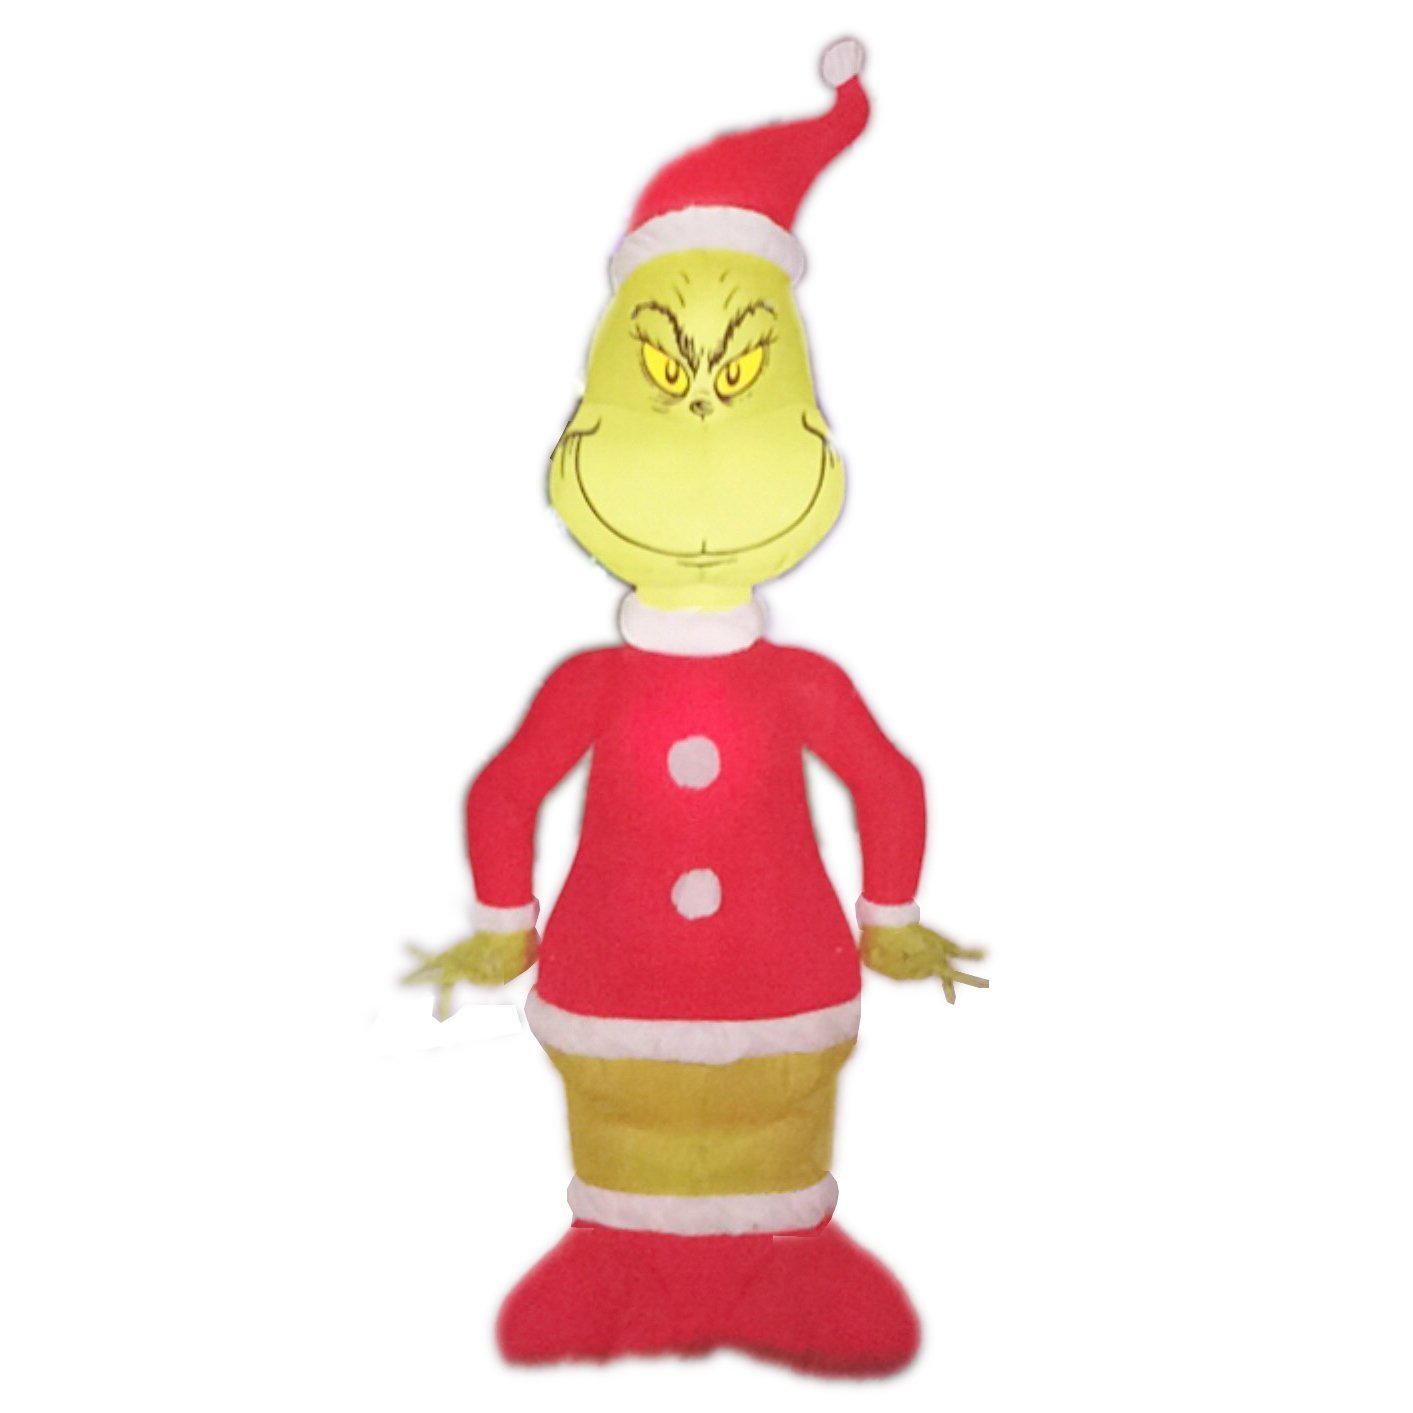 Christmas Dr Suess Inflatable 4' Grinch in Santa Suit By Gemmy